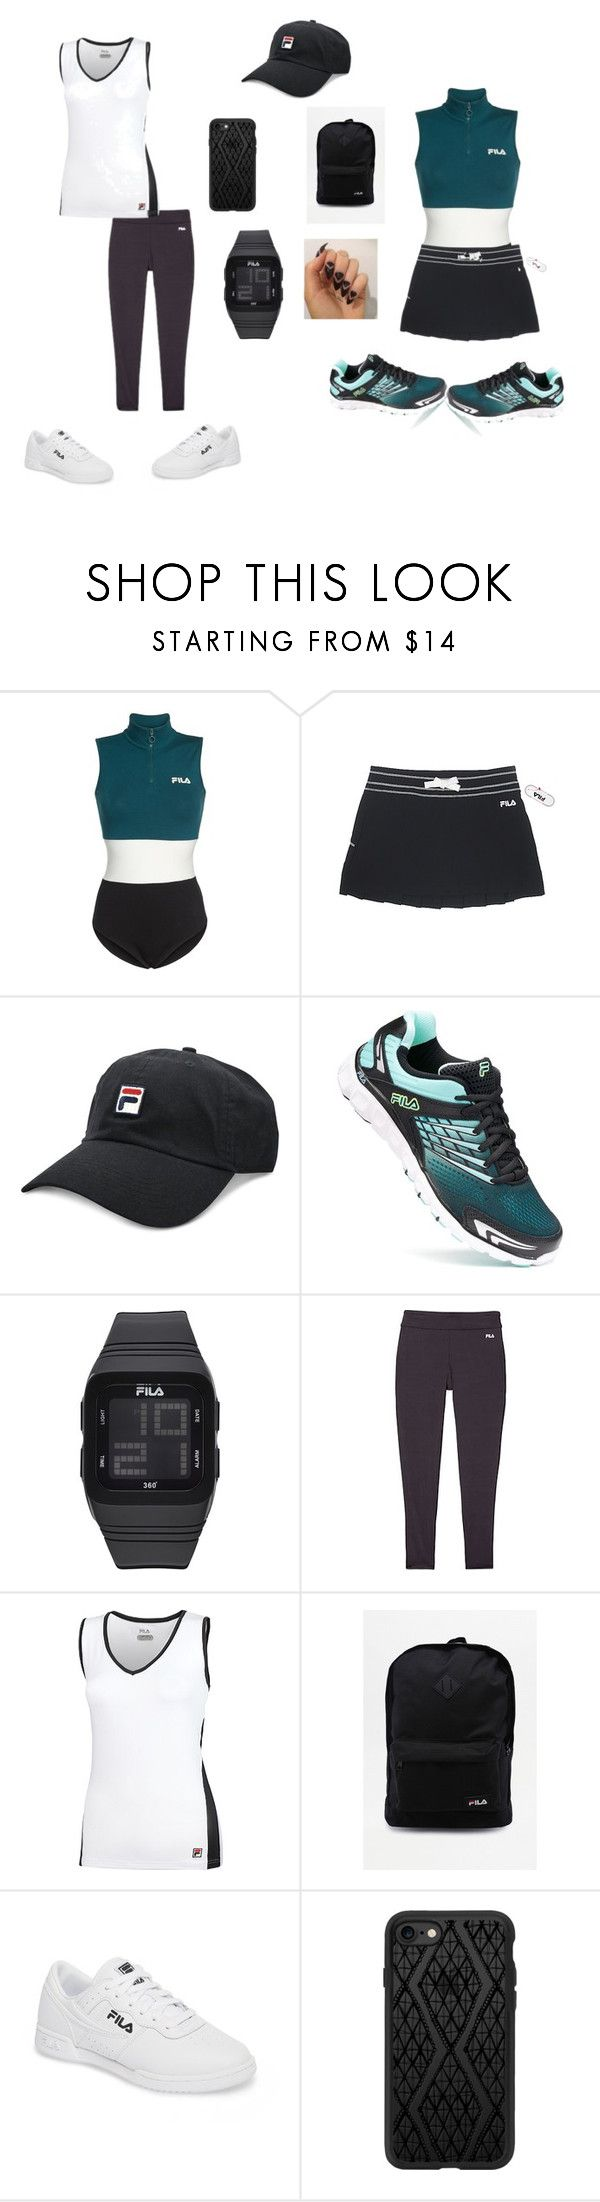 """2 for 1 FILA OUTFIT"" by bebejohnson ❤ liked on Polyvore featuring Fila and Casetify"